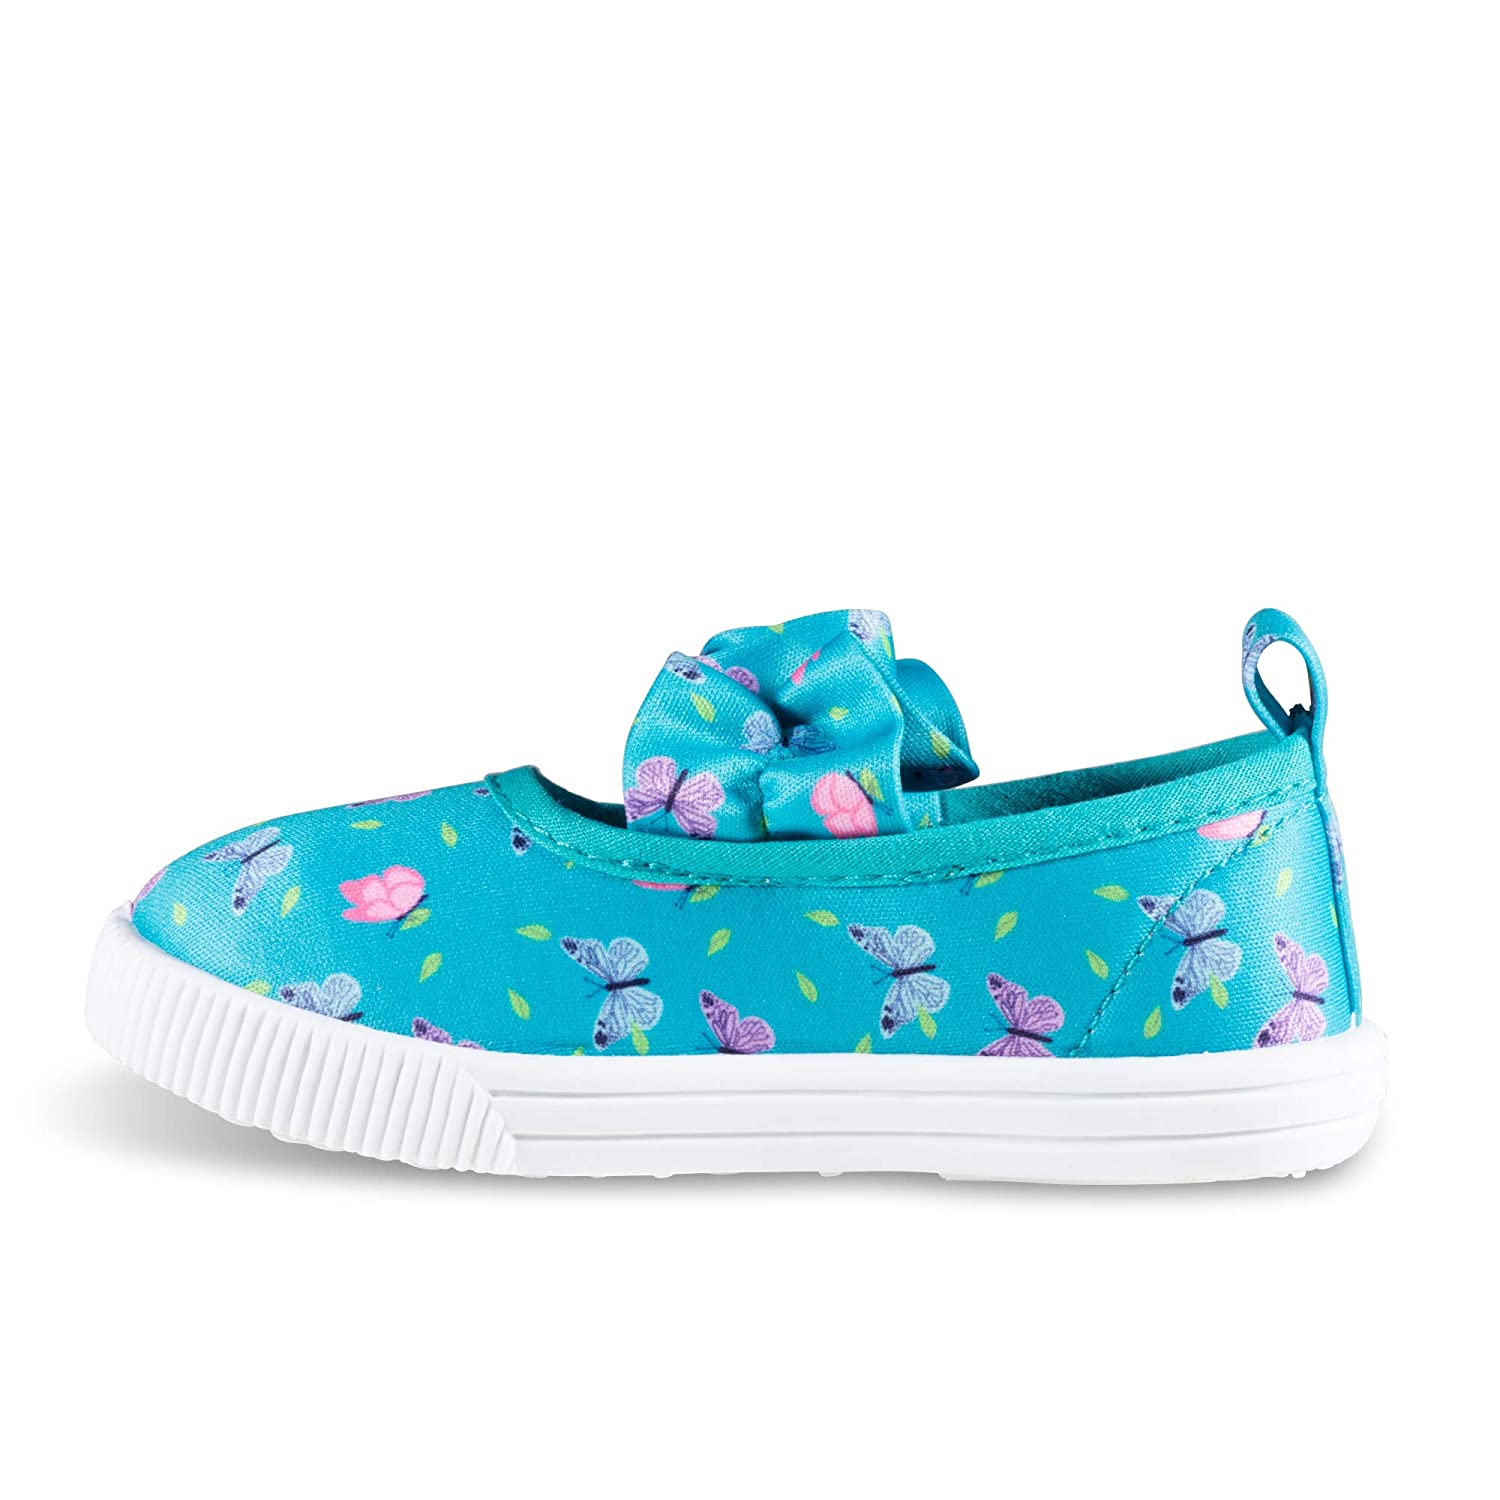 Girls Mary Jane Sneakers Easy Close Casual Canvas Shoes Toddler Sizes 5-10